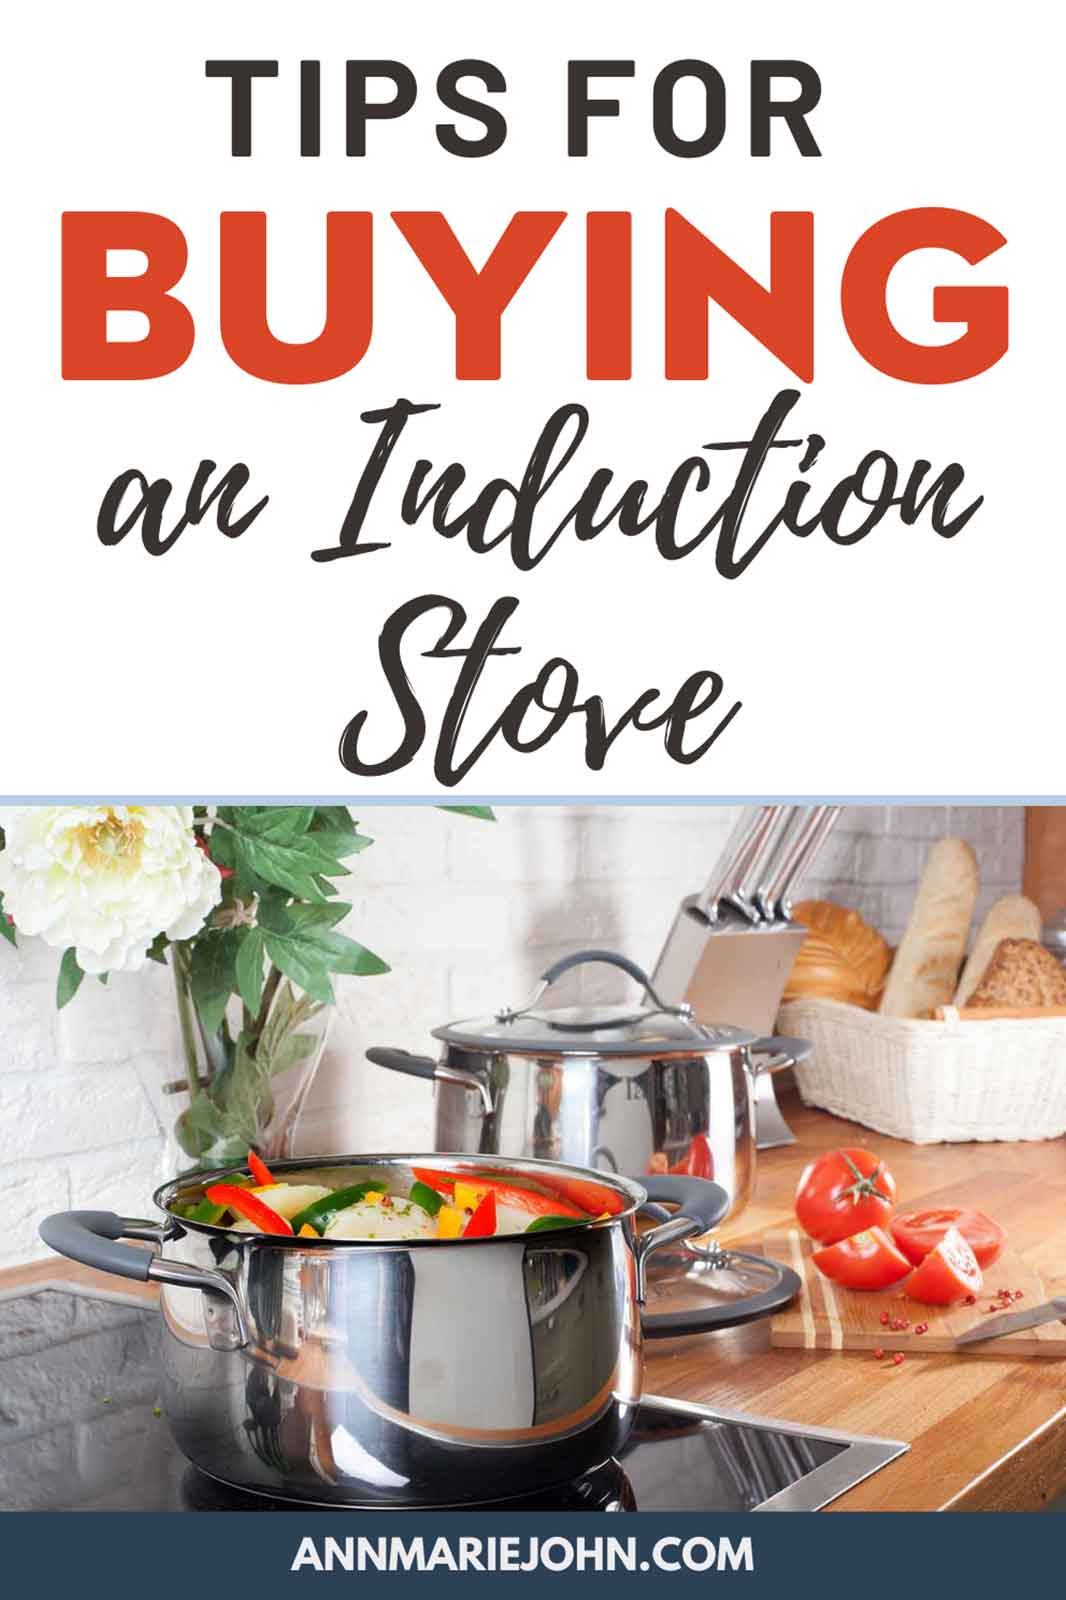 Useful Tips for Buying an Induction Stove